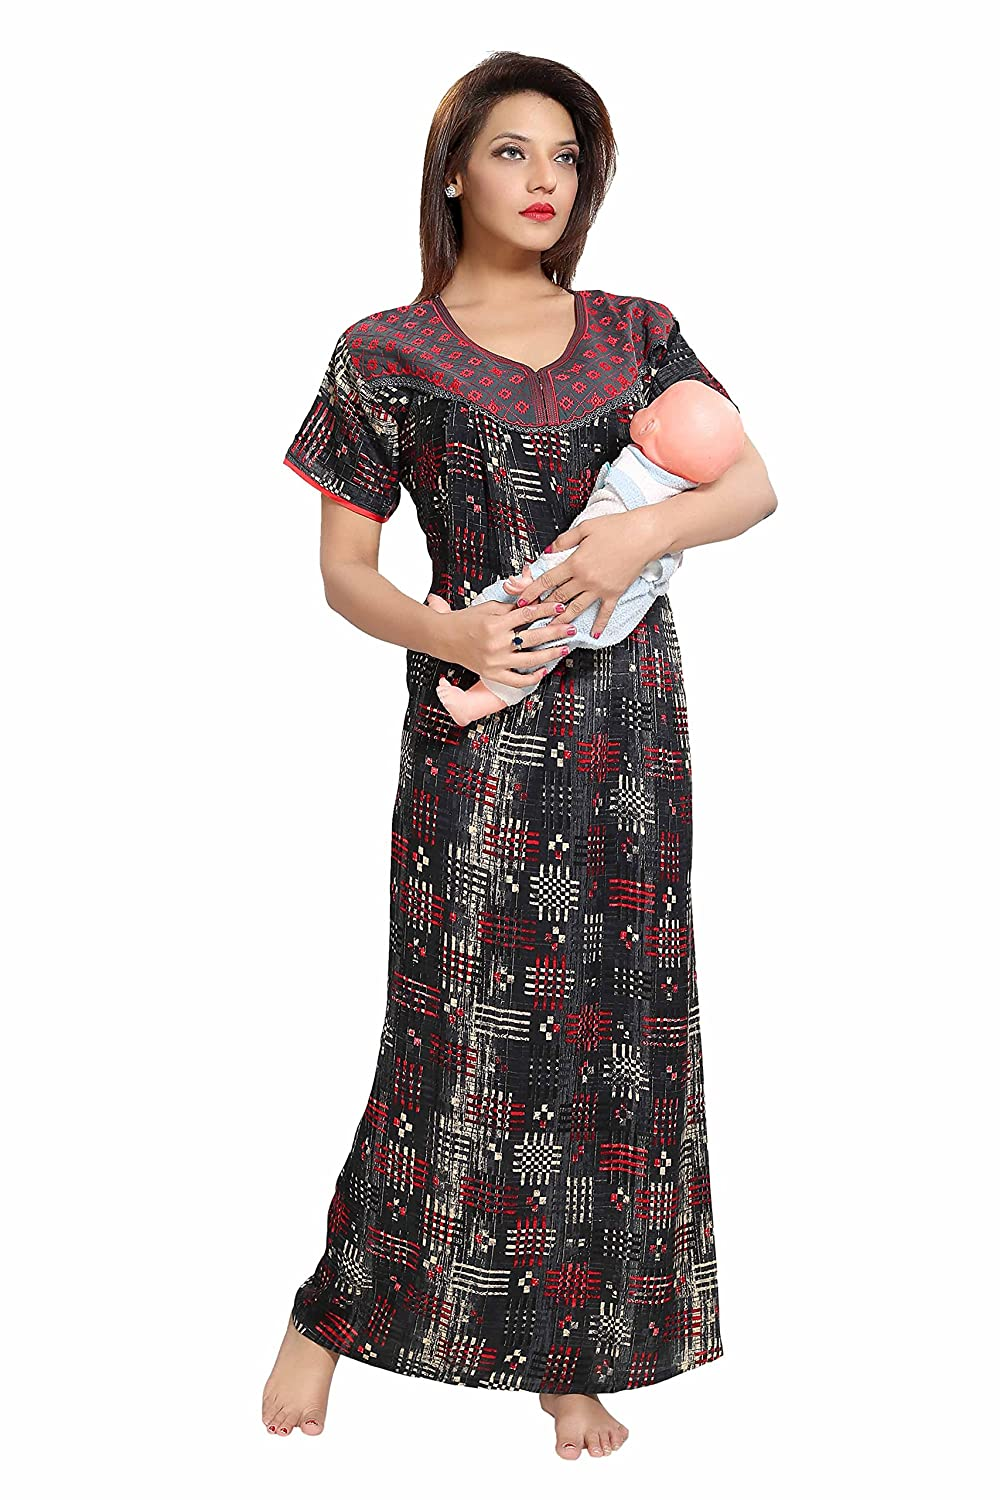 98d6f7d7ec730 Soulemo Womens Embroidery Feeding Nighty/Maternity Dress. (an Bombay Rayon  Fabric). 641: Amazon.in: Clothing & Accessories